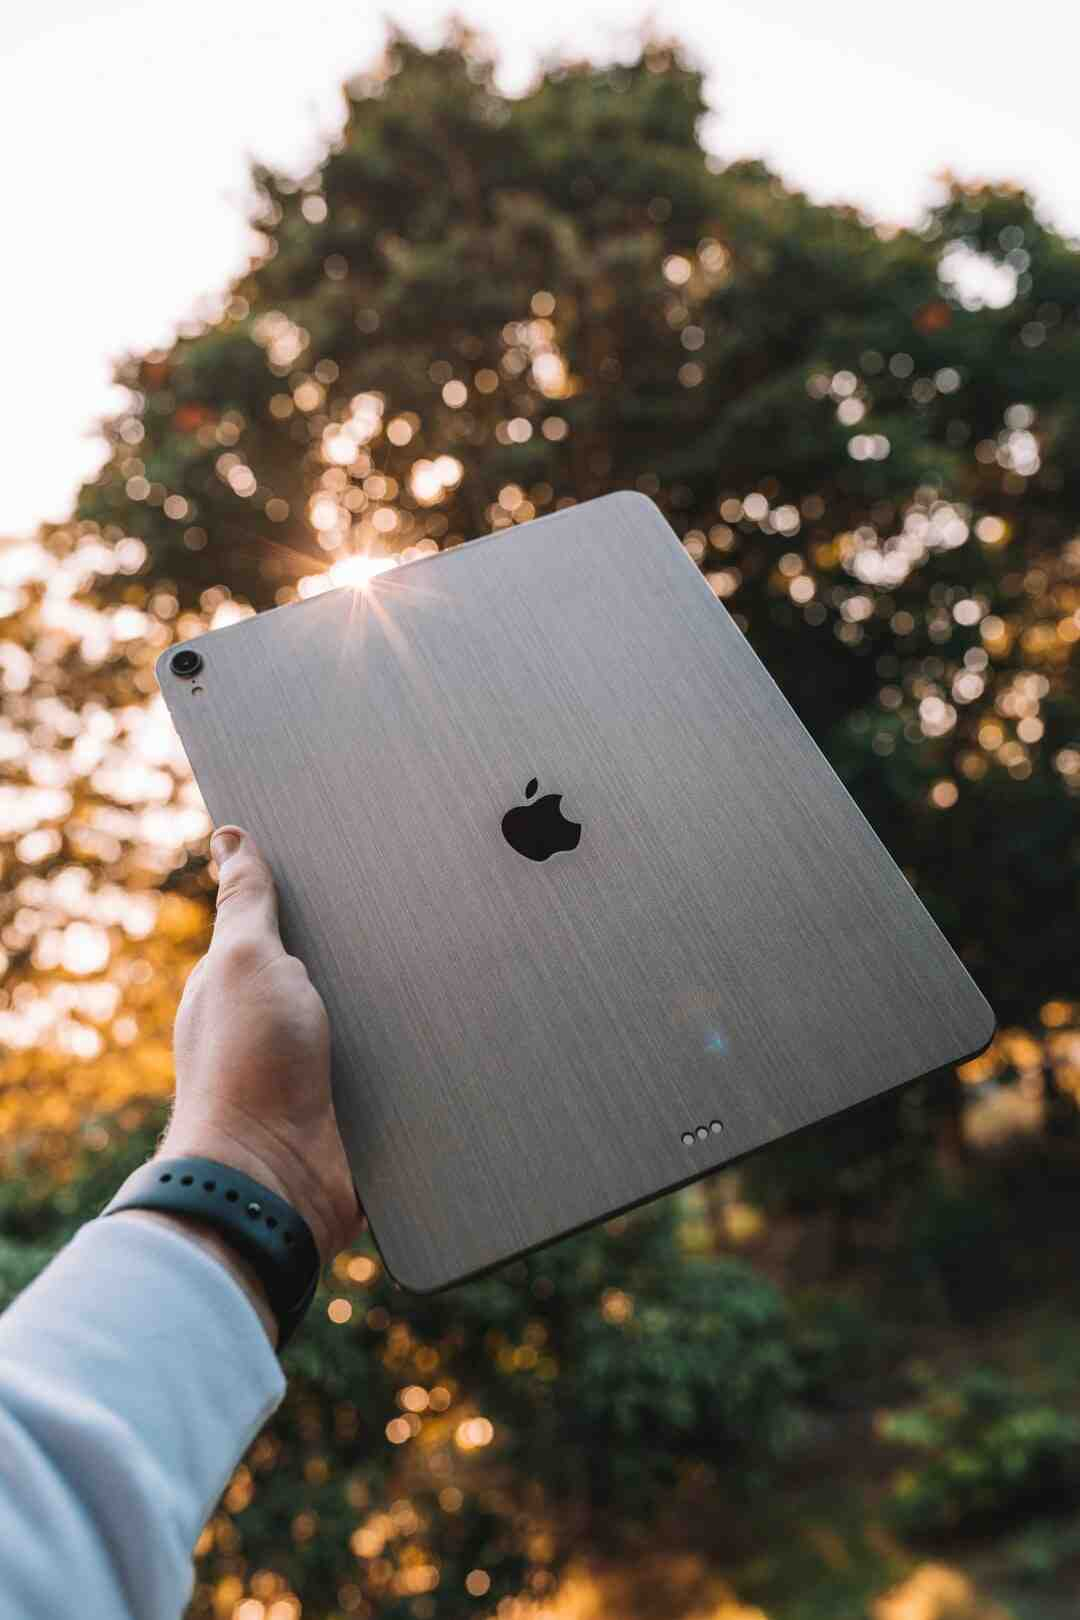 How do you get into a locked iPad?